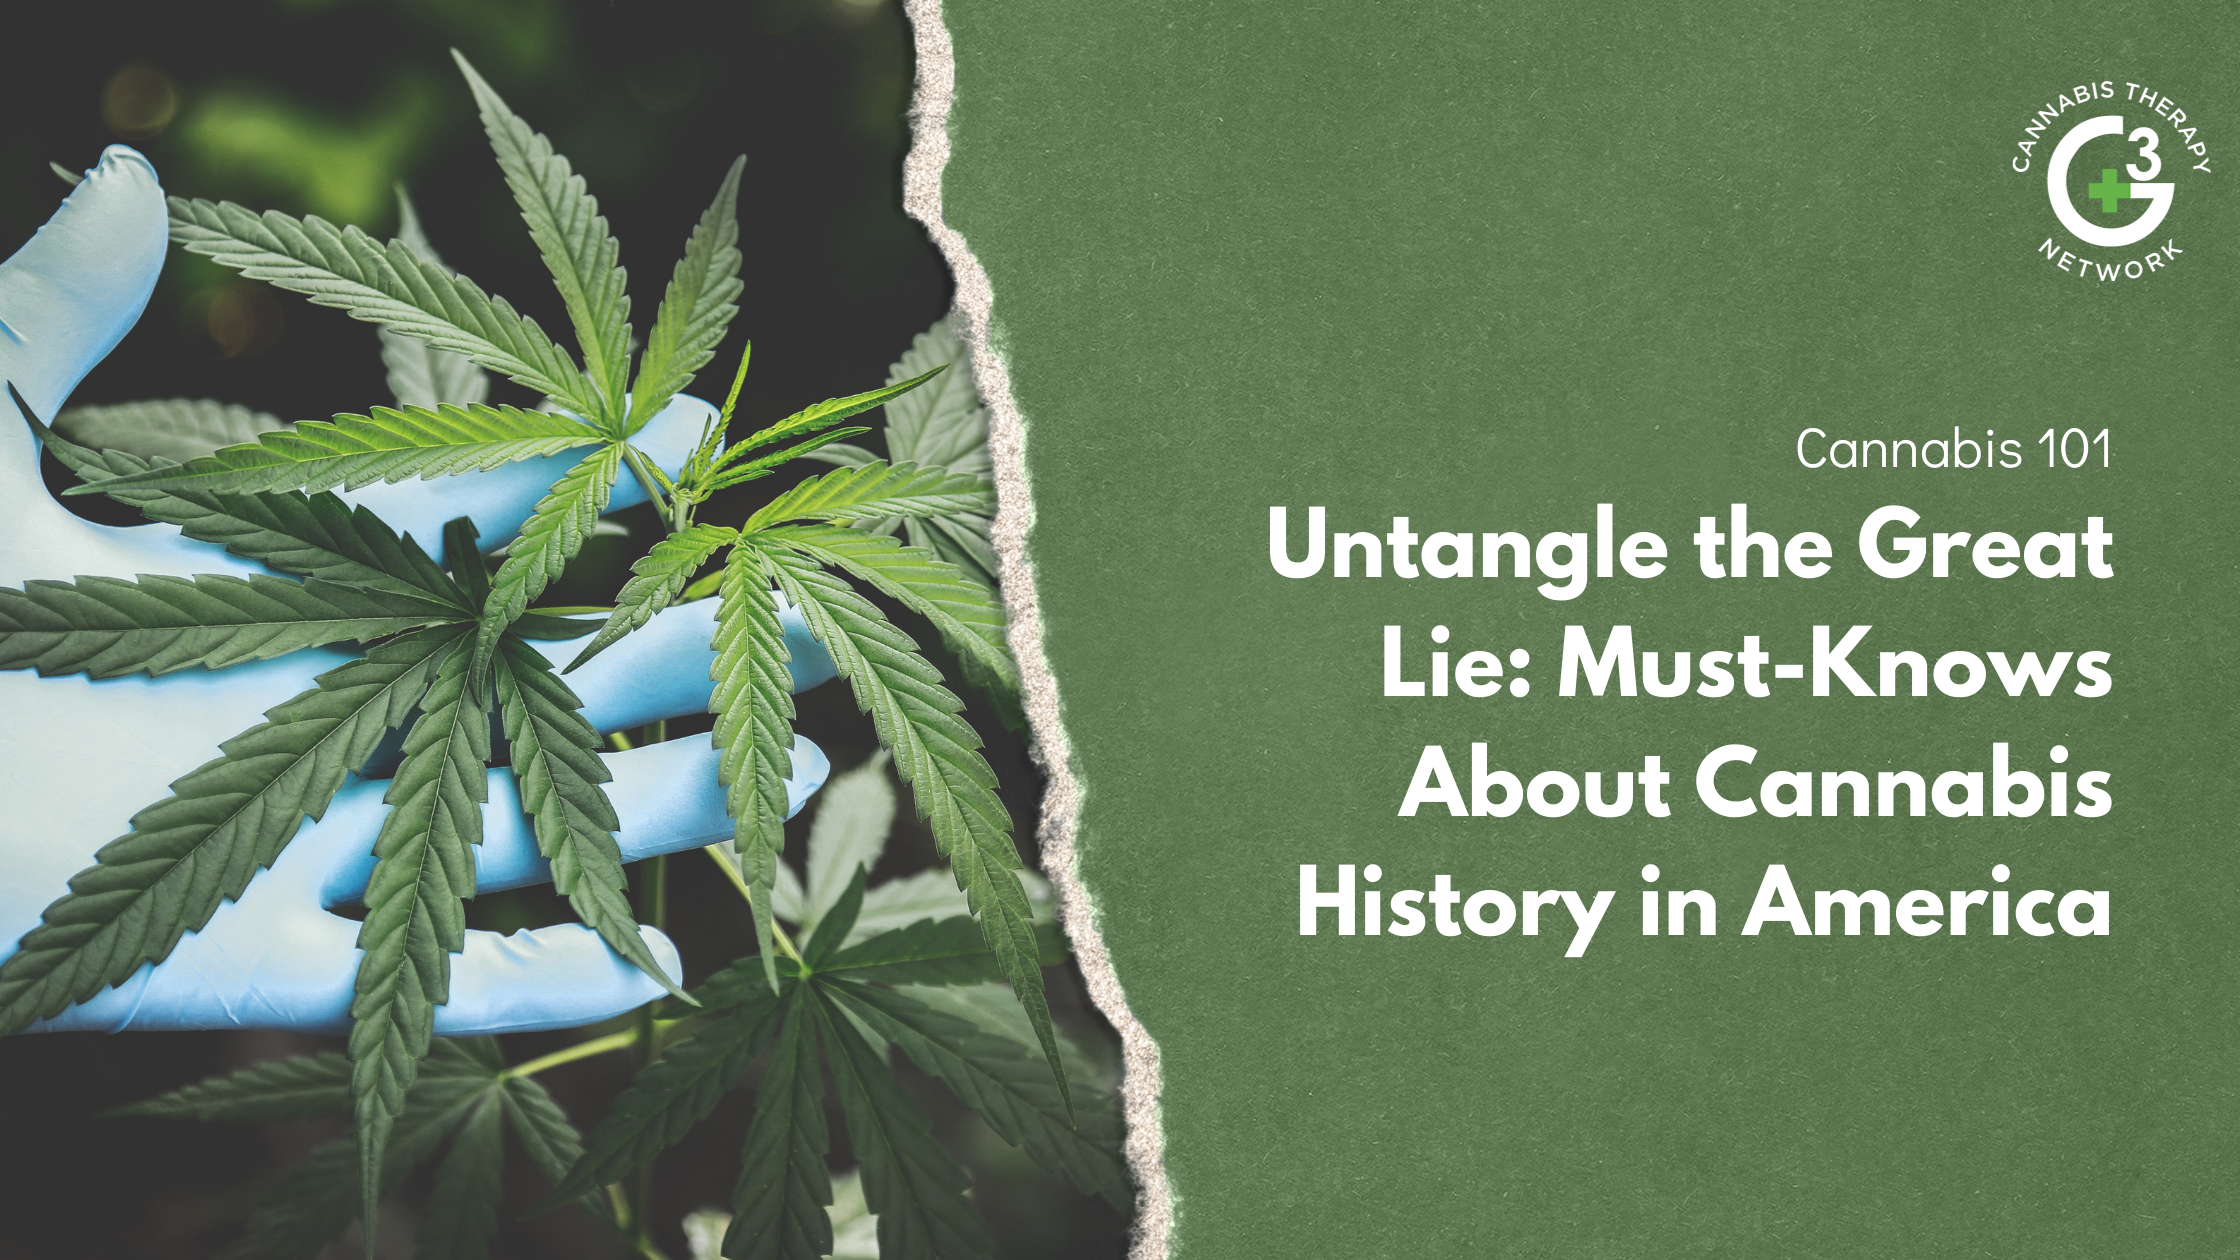 The Top Things You Need to Know About Cannabis History